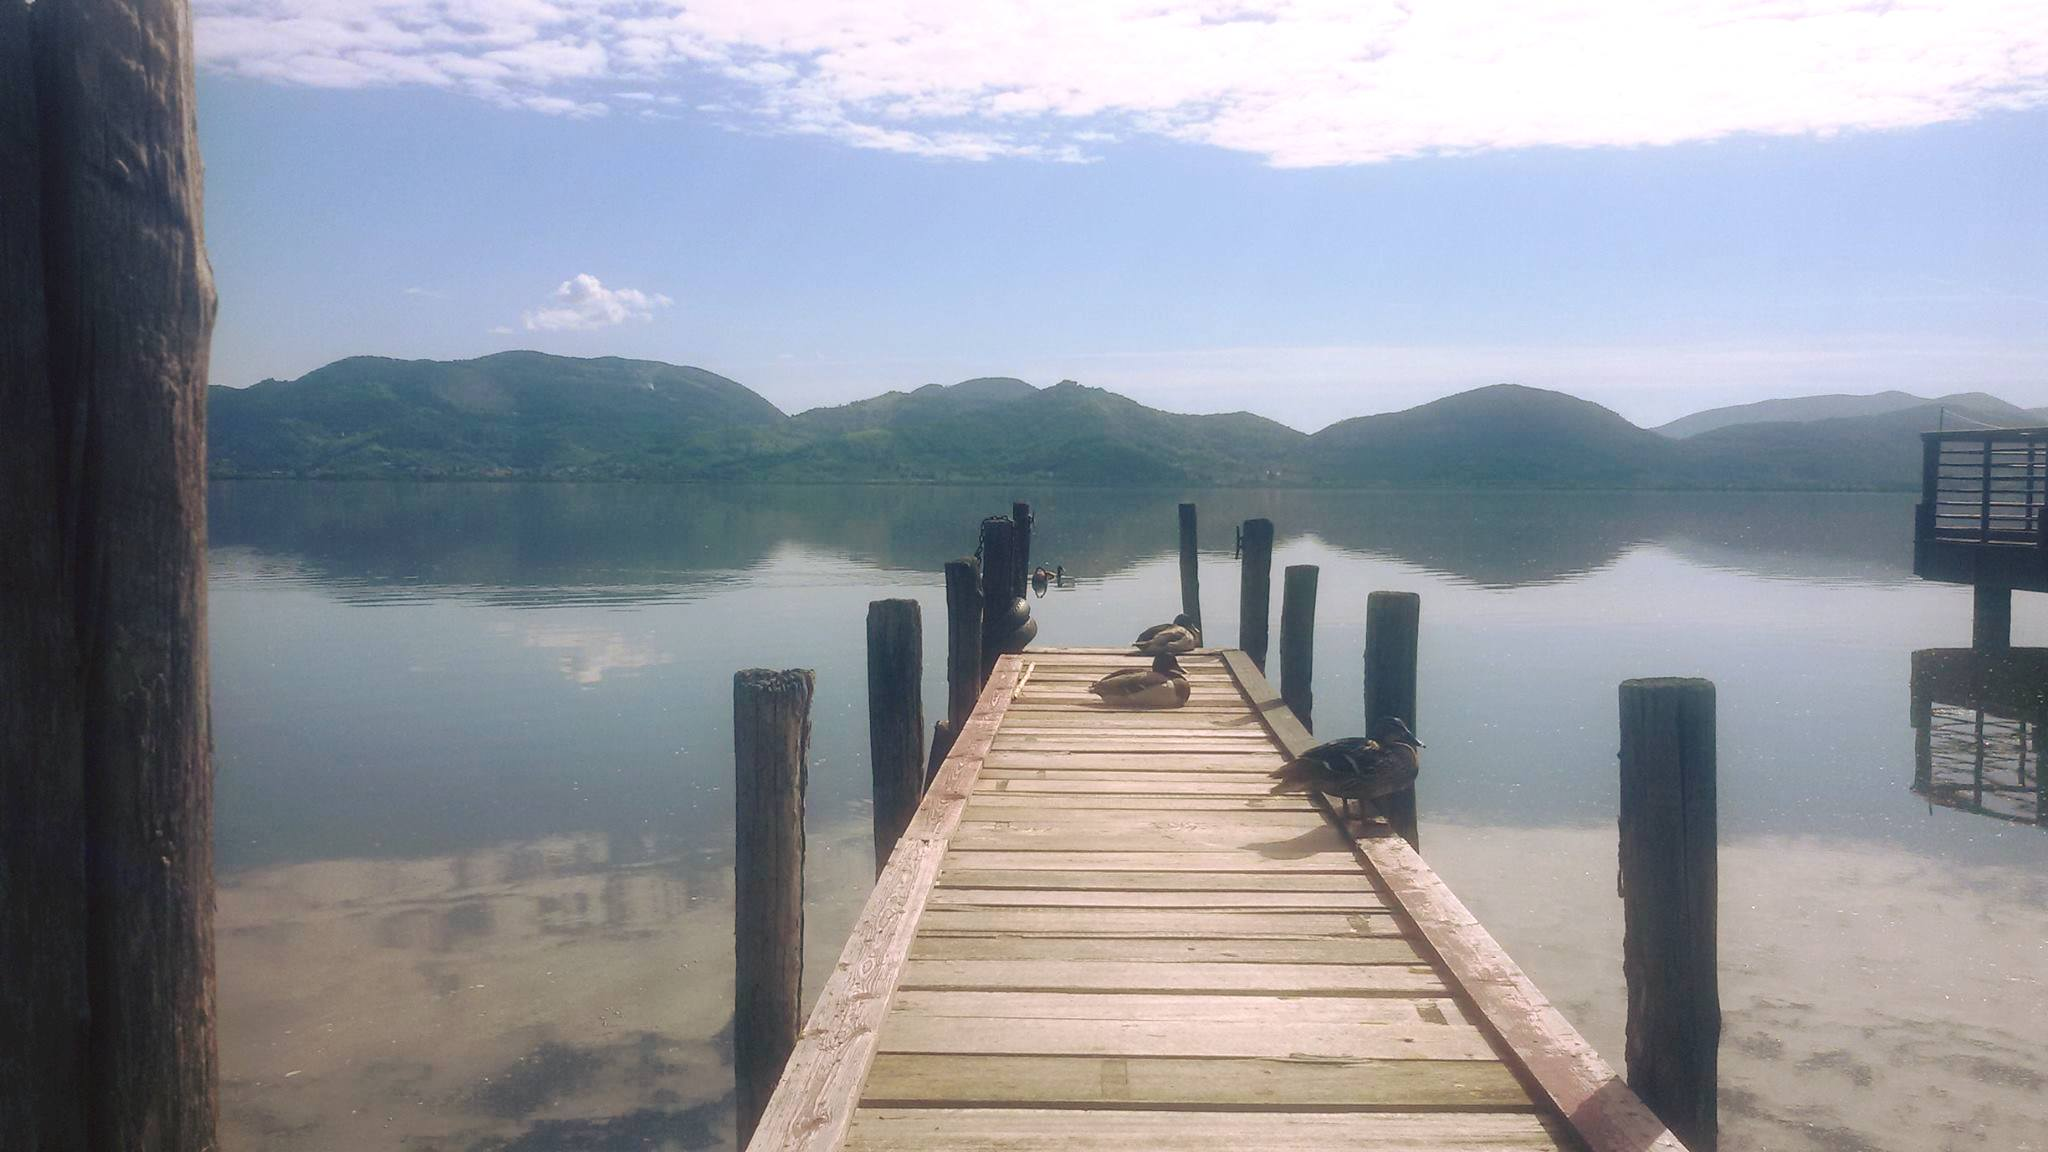 Pontile on the lake of PUCCINI